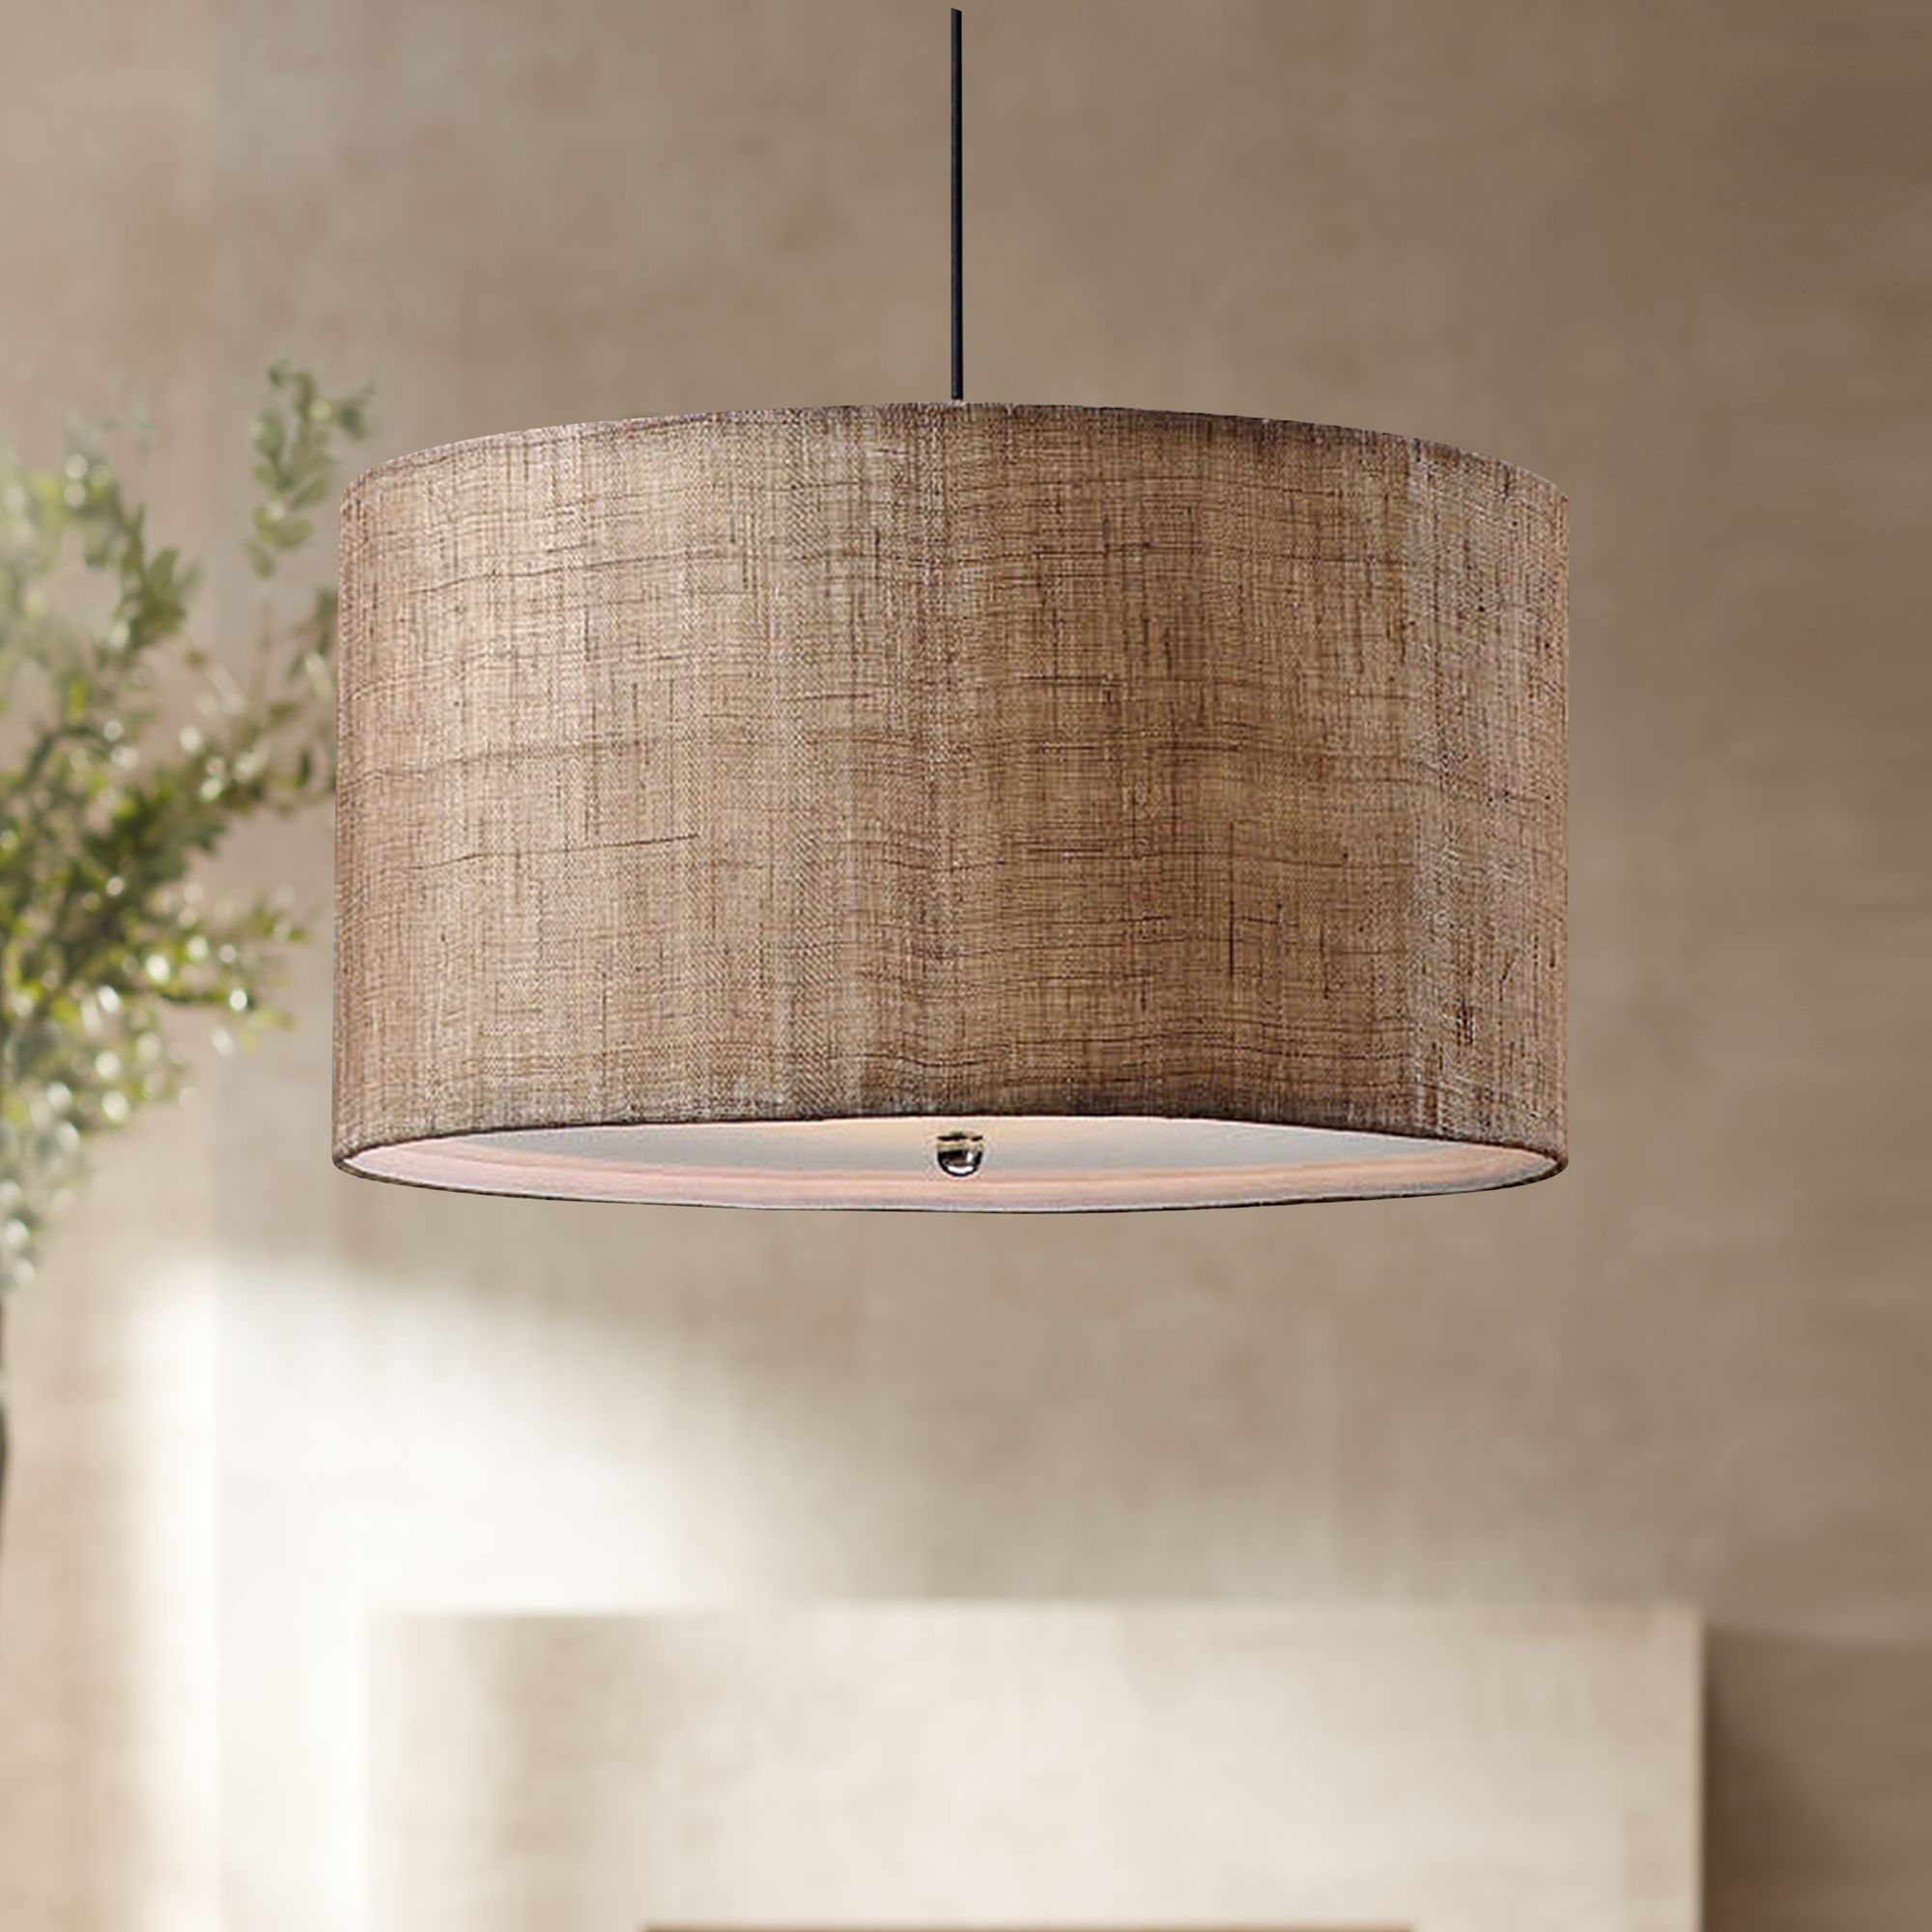 uttermost dafina burlap 3light pendant light